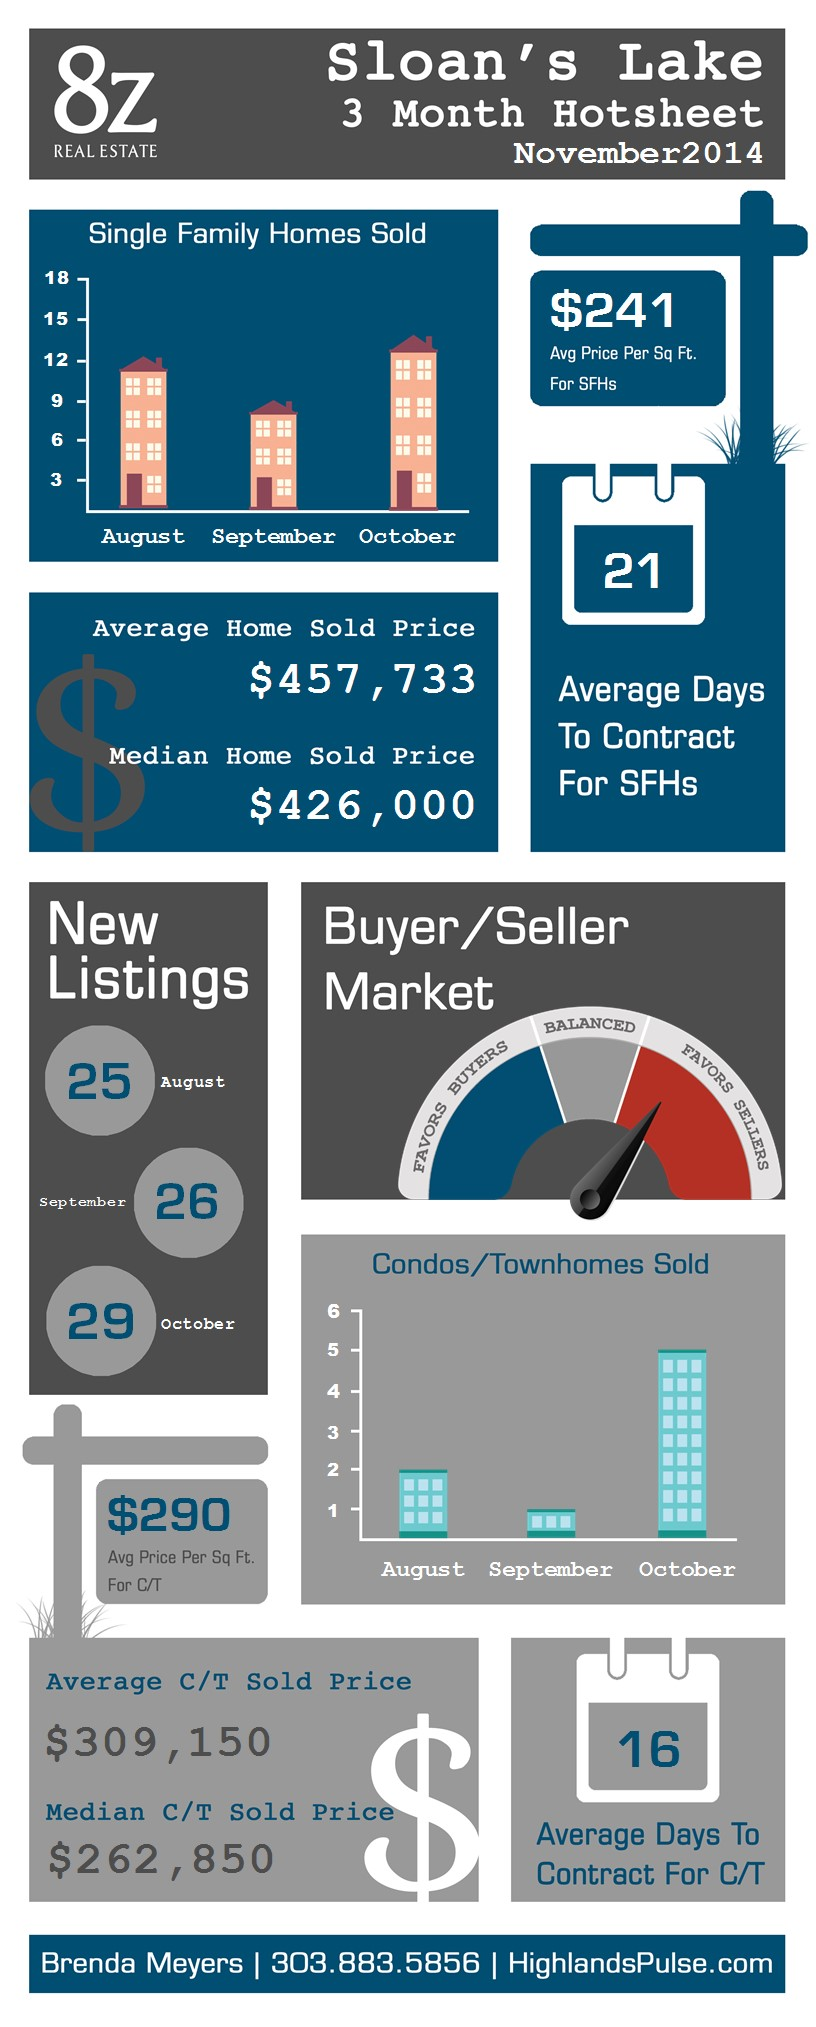 Sloan's Lake - Denver, real estate infographic